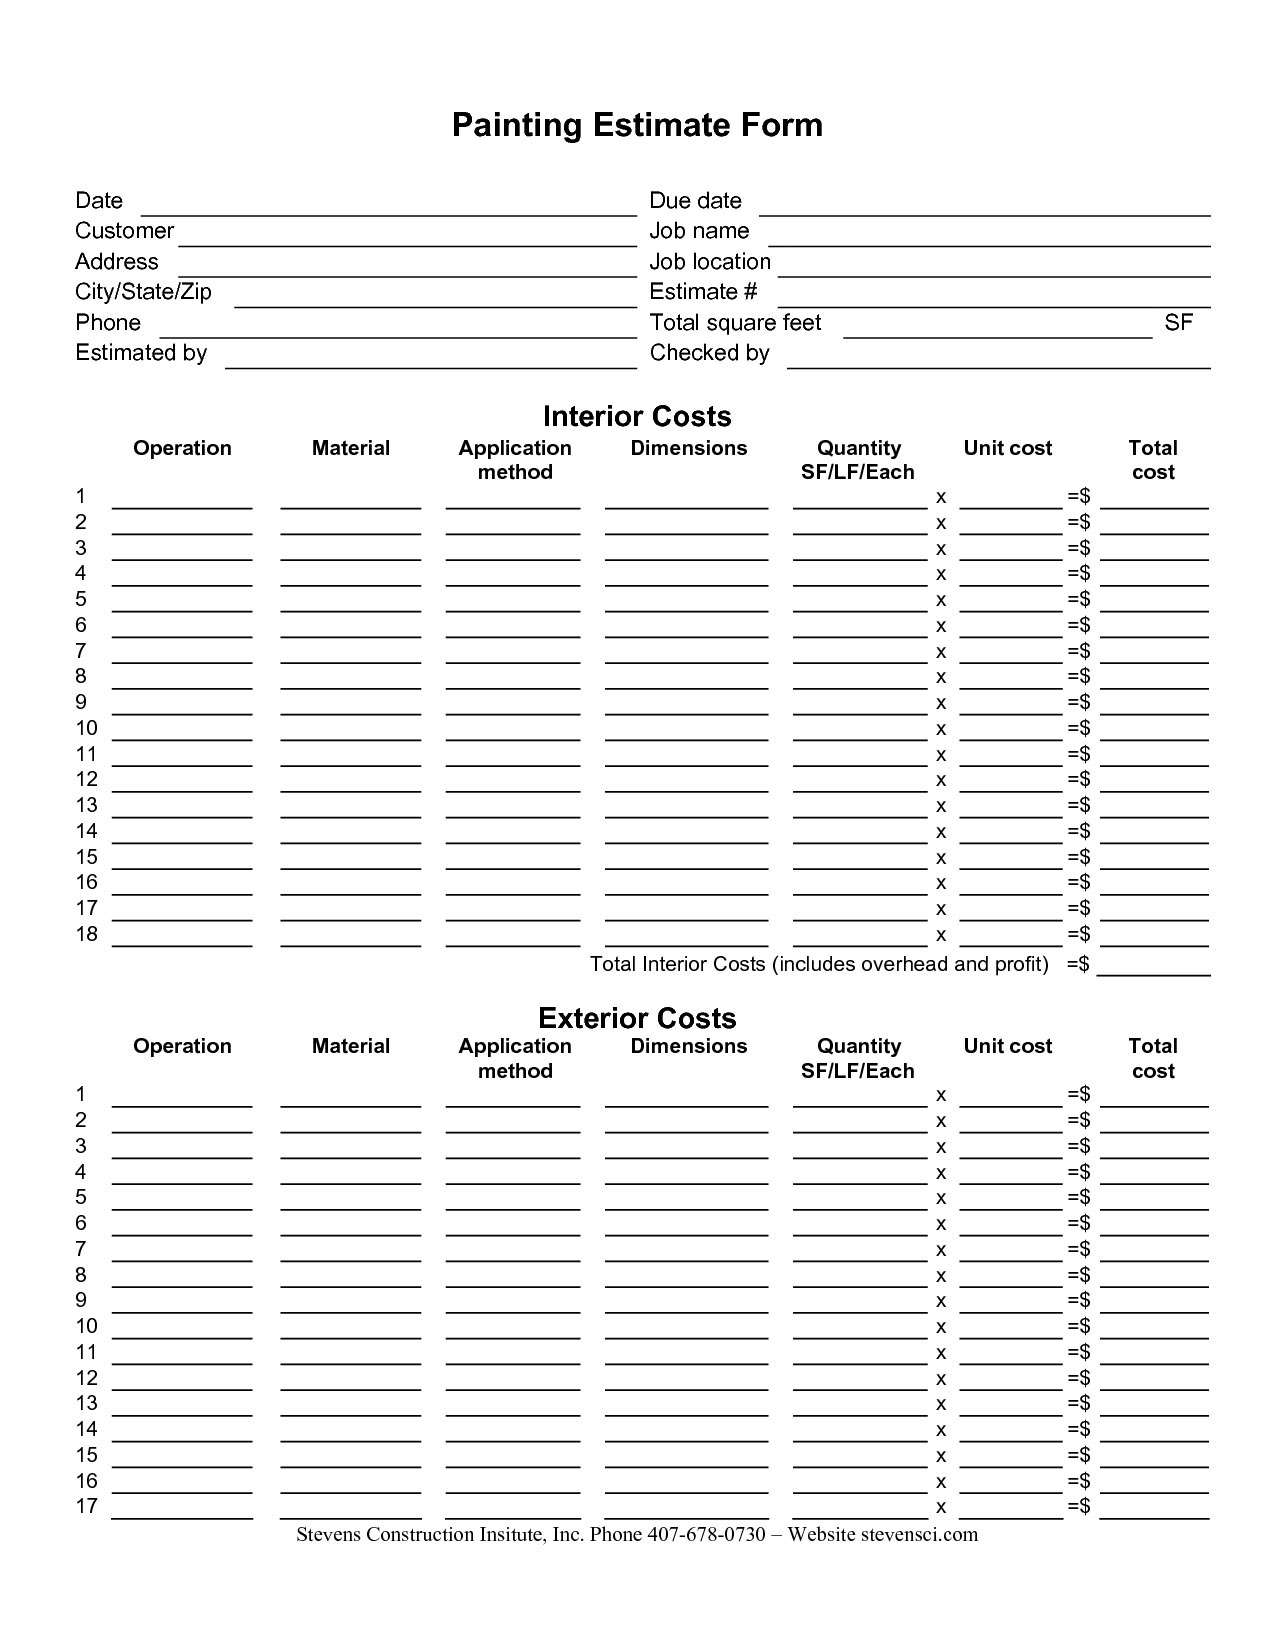 Painting Estimate Form Sample | Painting Estimate Sheet Templates In Construction Estimate Sheet Templates